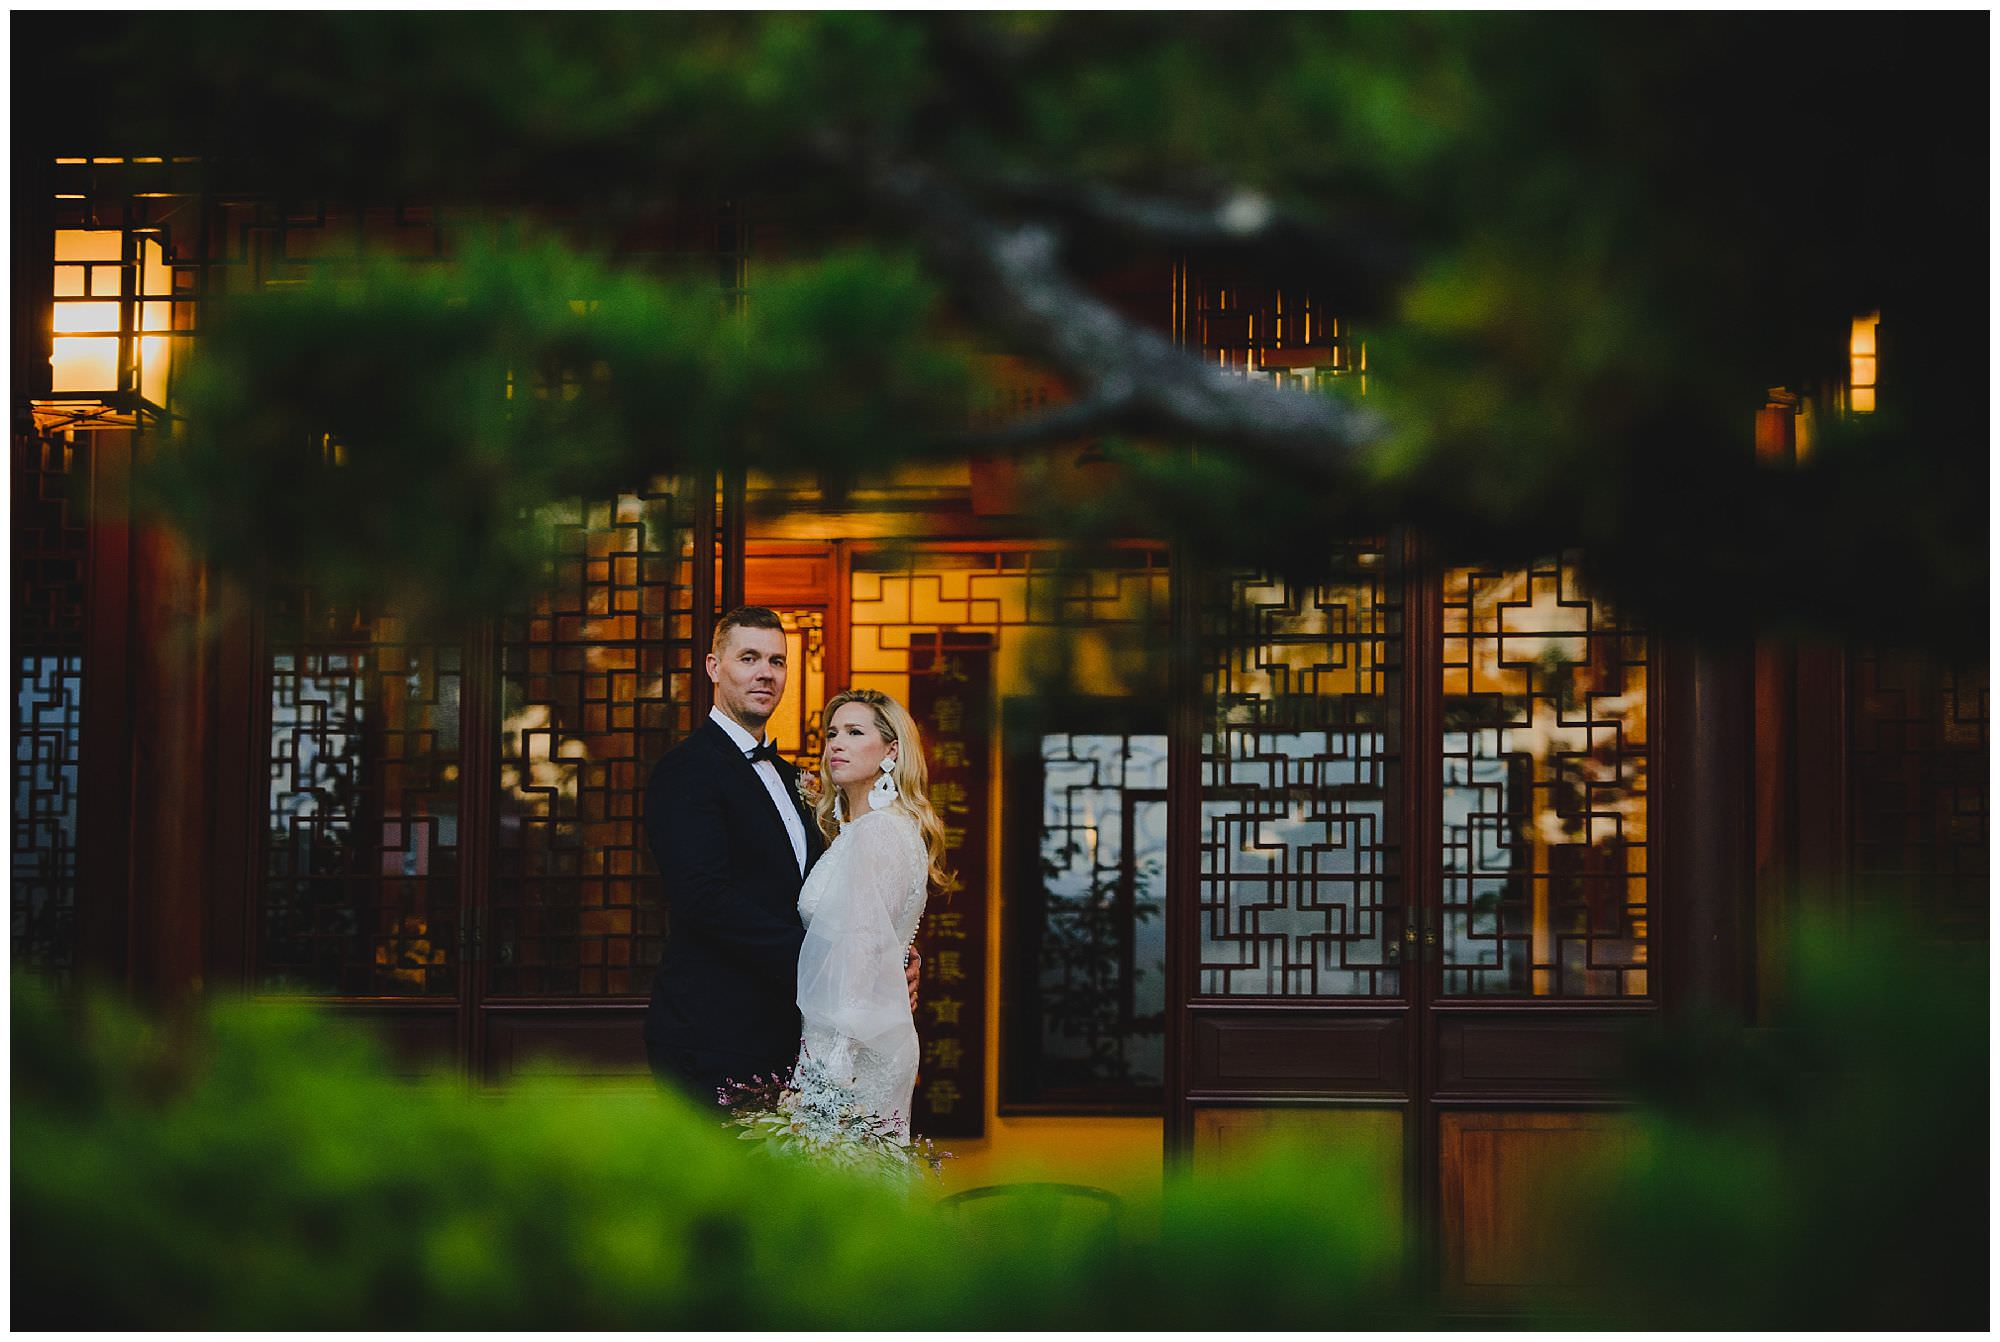 stylish bride and groom at sunset after their wedding ceremony at Dr. Sun Yat-Sen Classical Chinese Gardens, elopement, intimate wedding, candid wedding photography